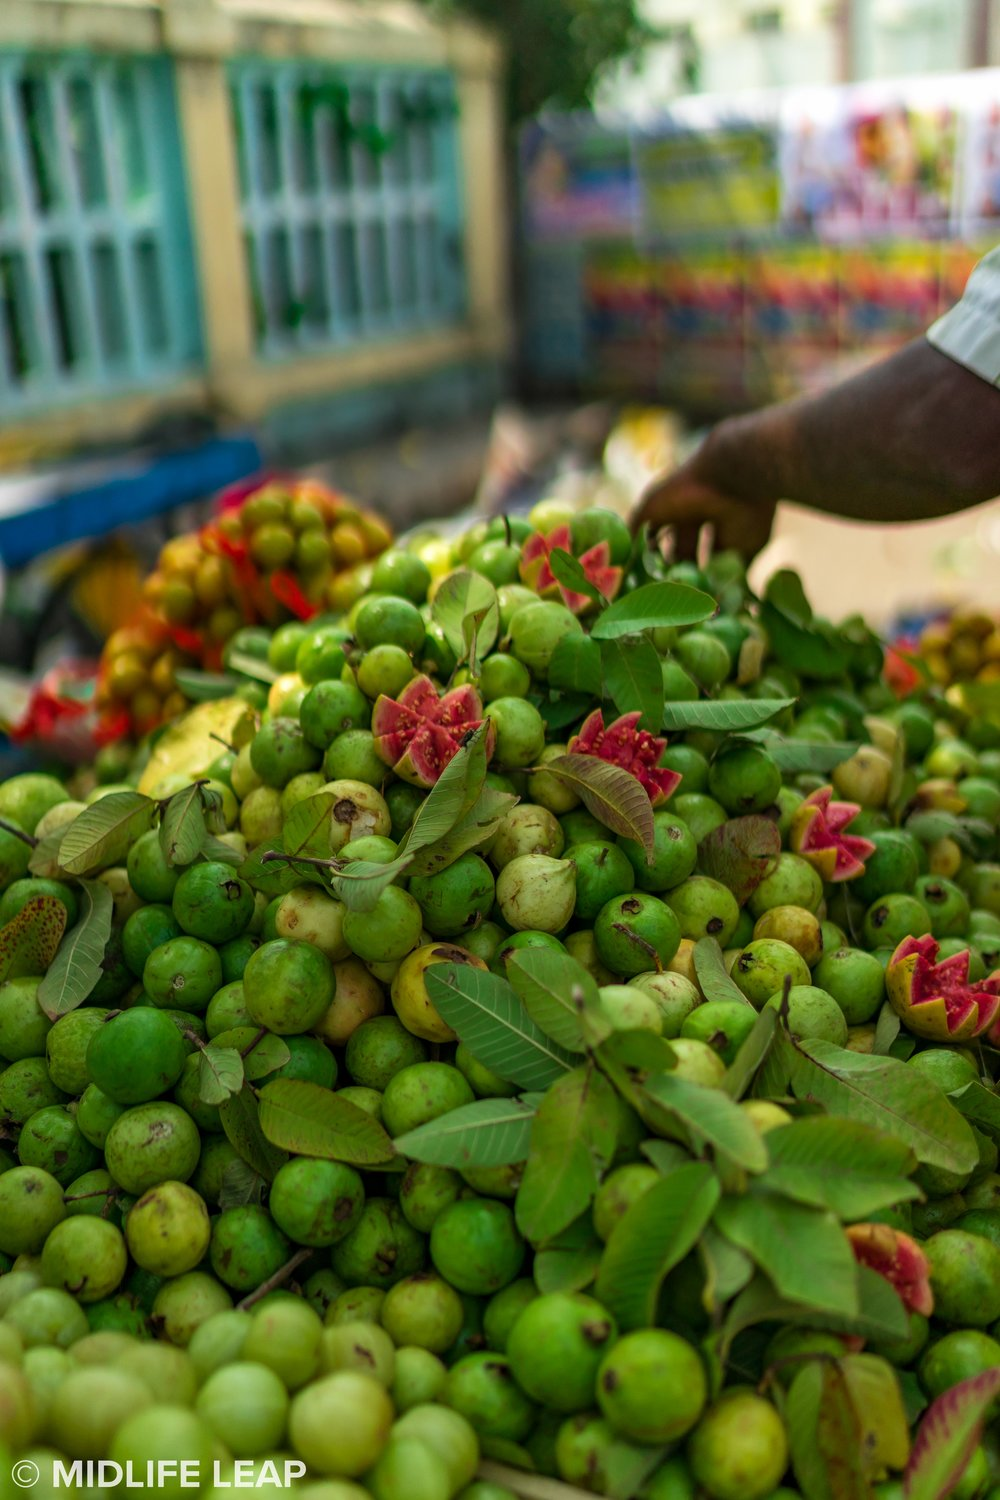 You could smell the sweet guava before passing the street stall